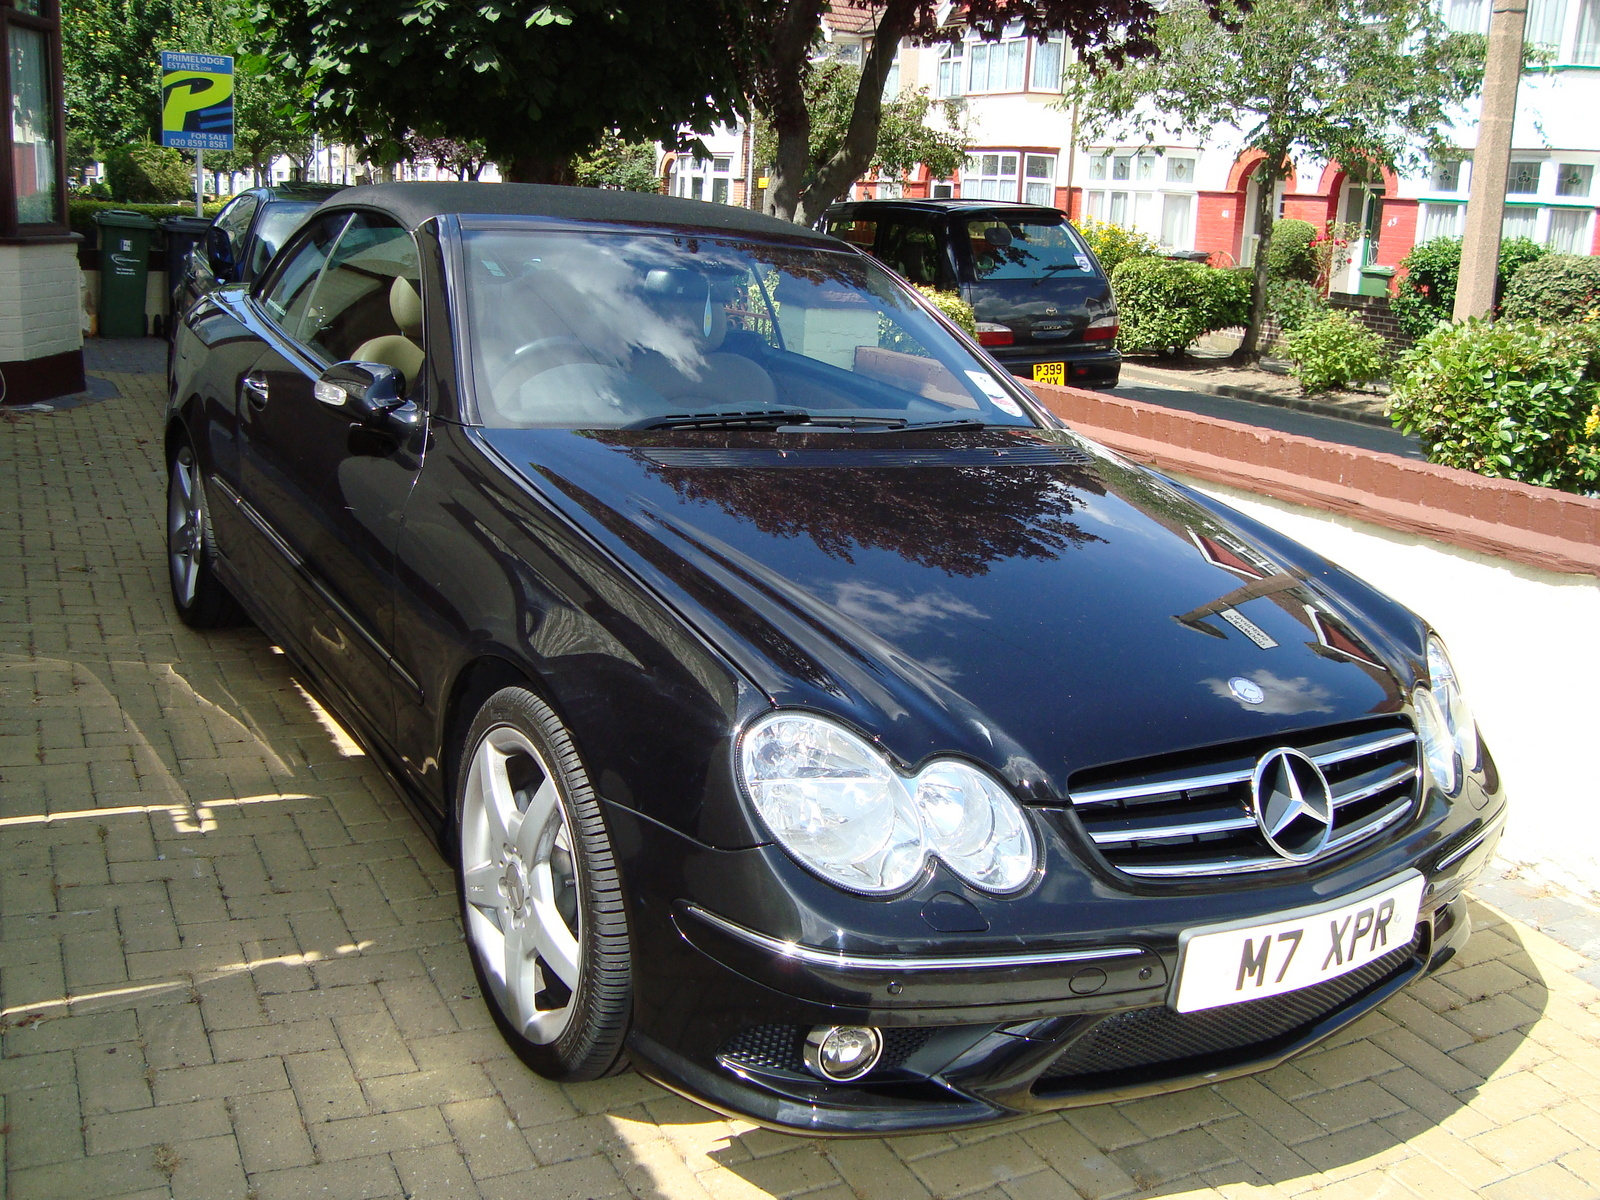 2007 mercedes benz clk class pictures cargurus for 2010 mercedes benz clk350